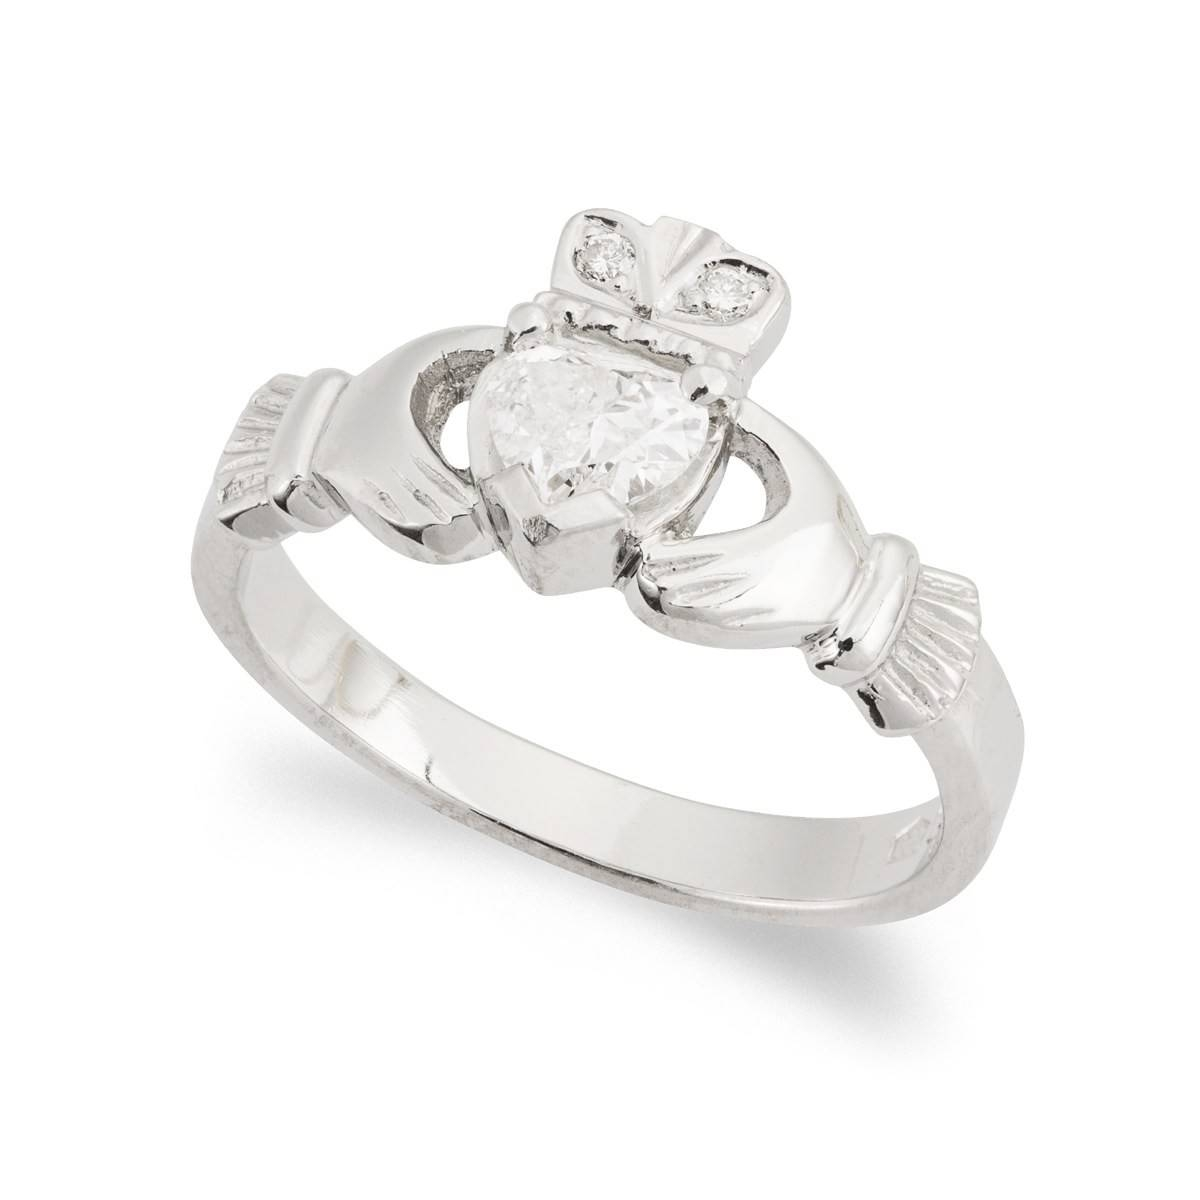 Kinvara Diamond Claddagh Ring In 18 Kt White Gold| Regarding Diamond Claddagh Engagement Rings (View 13 of 15)